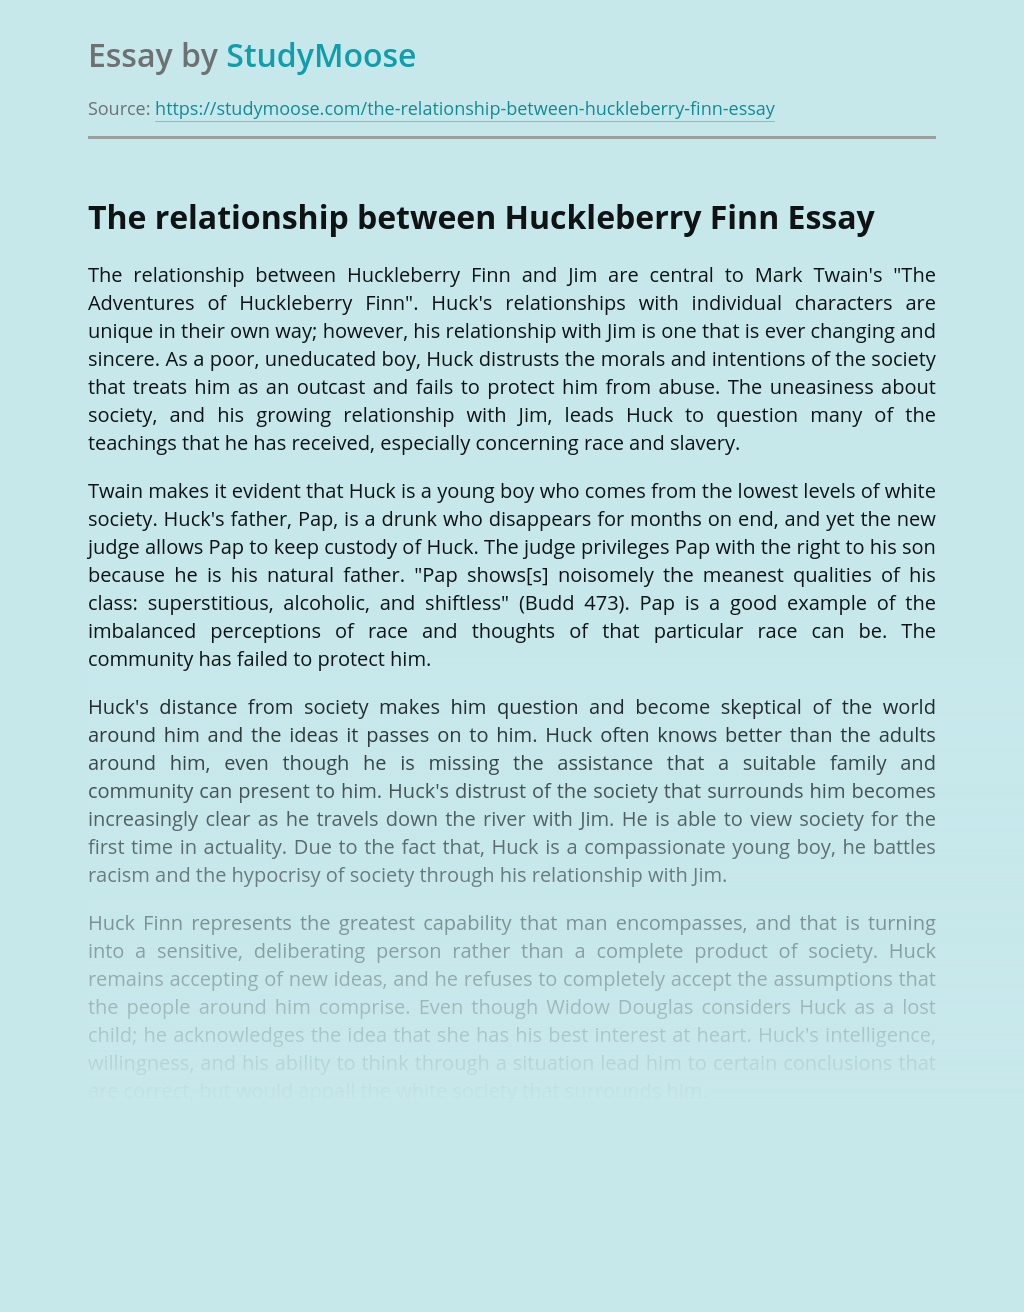 The relationship between Huckleberry Finn